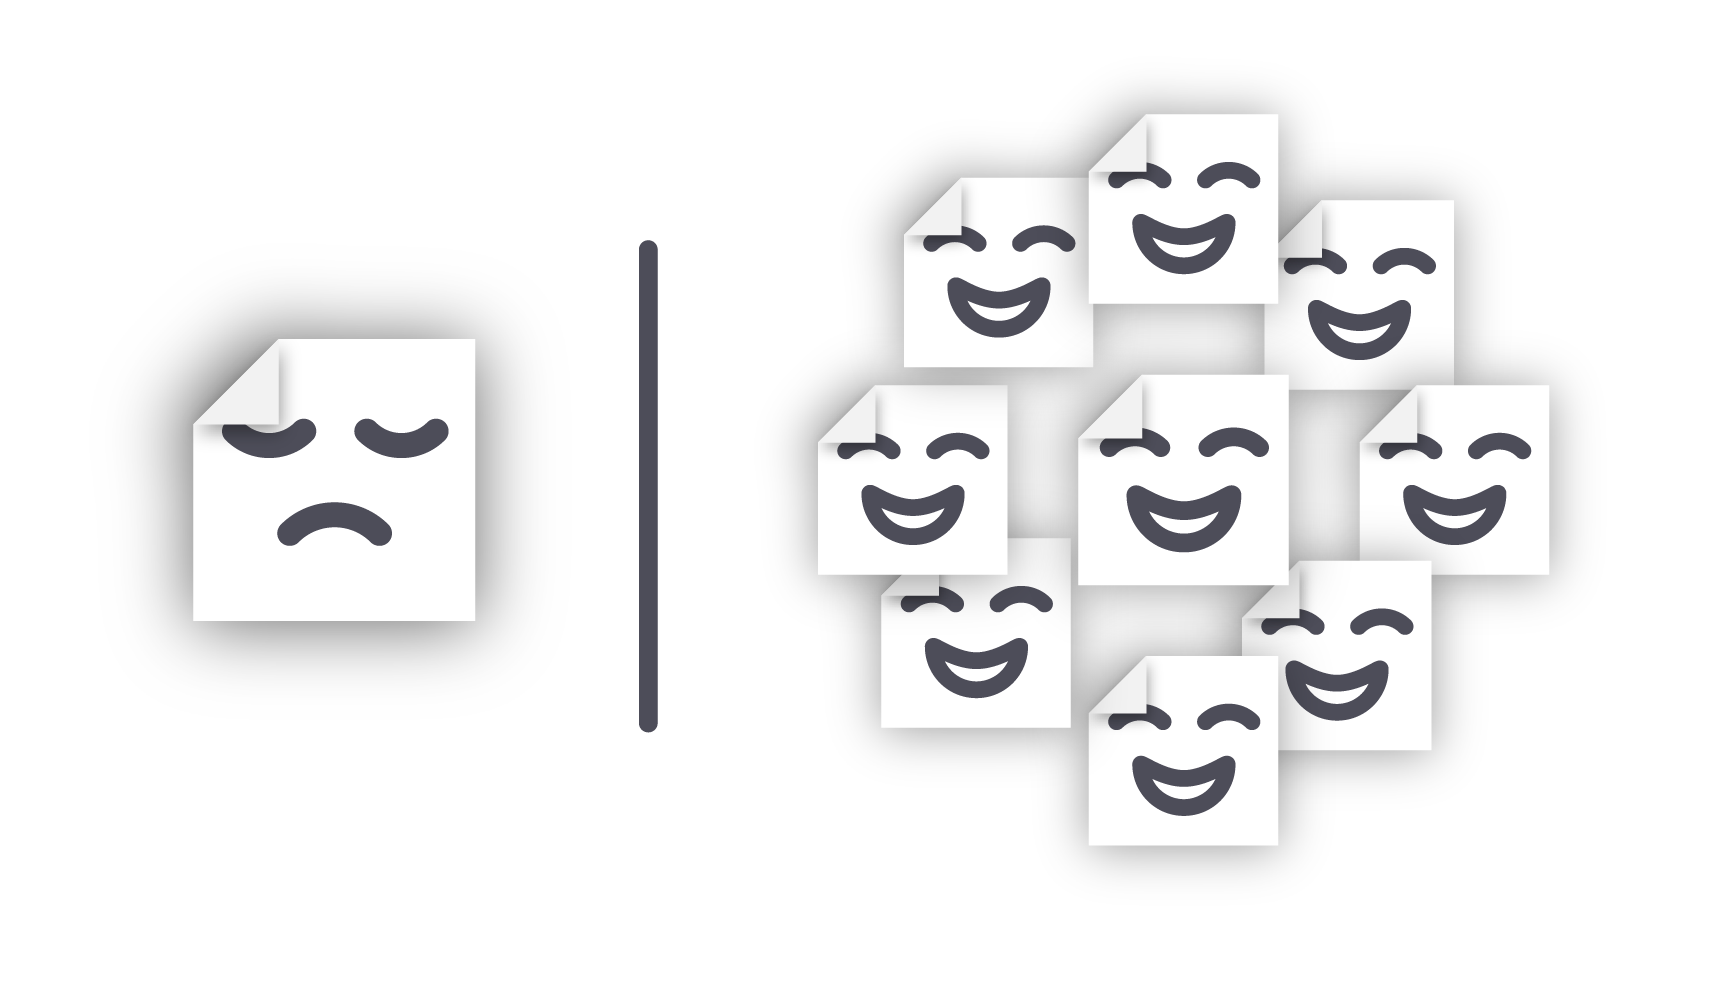 One file is sad, but many files together are happy!